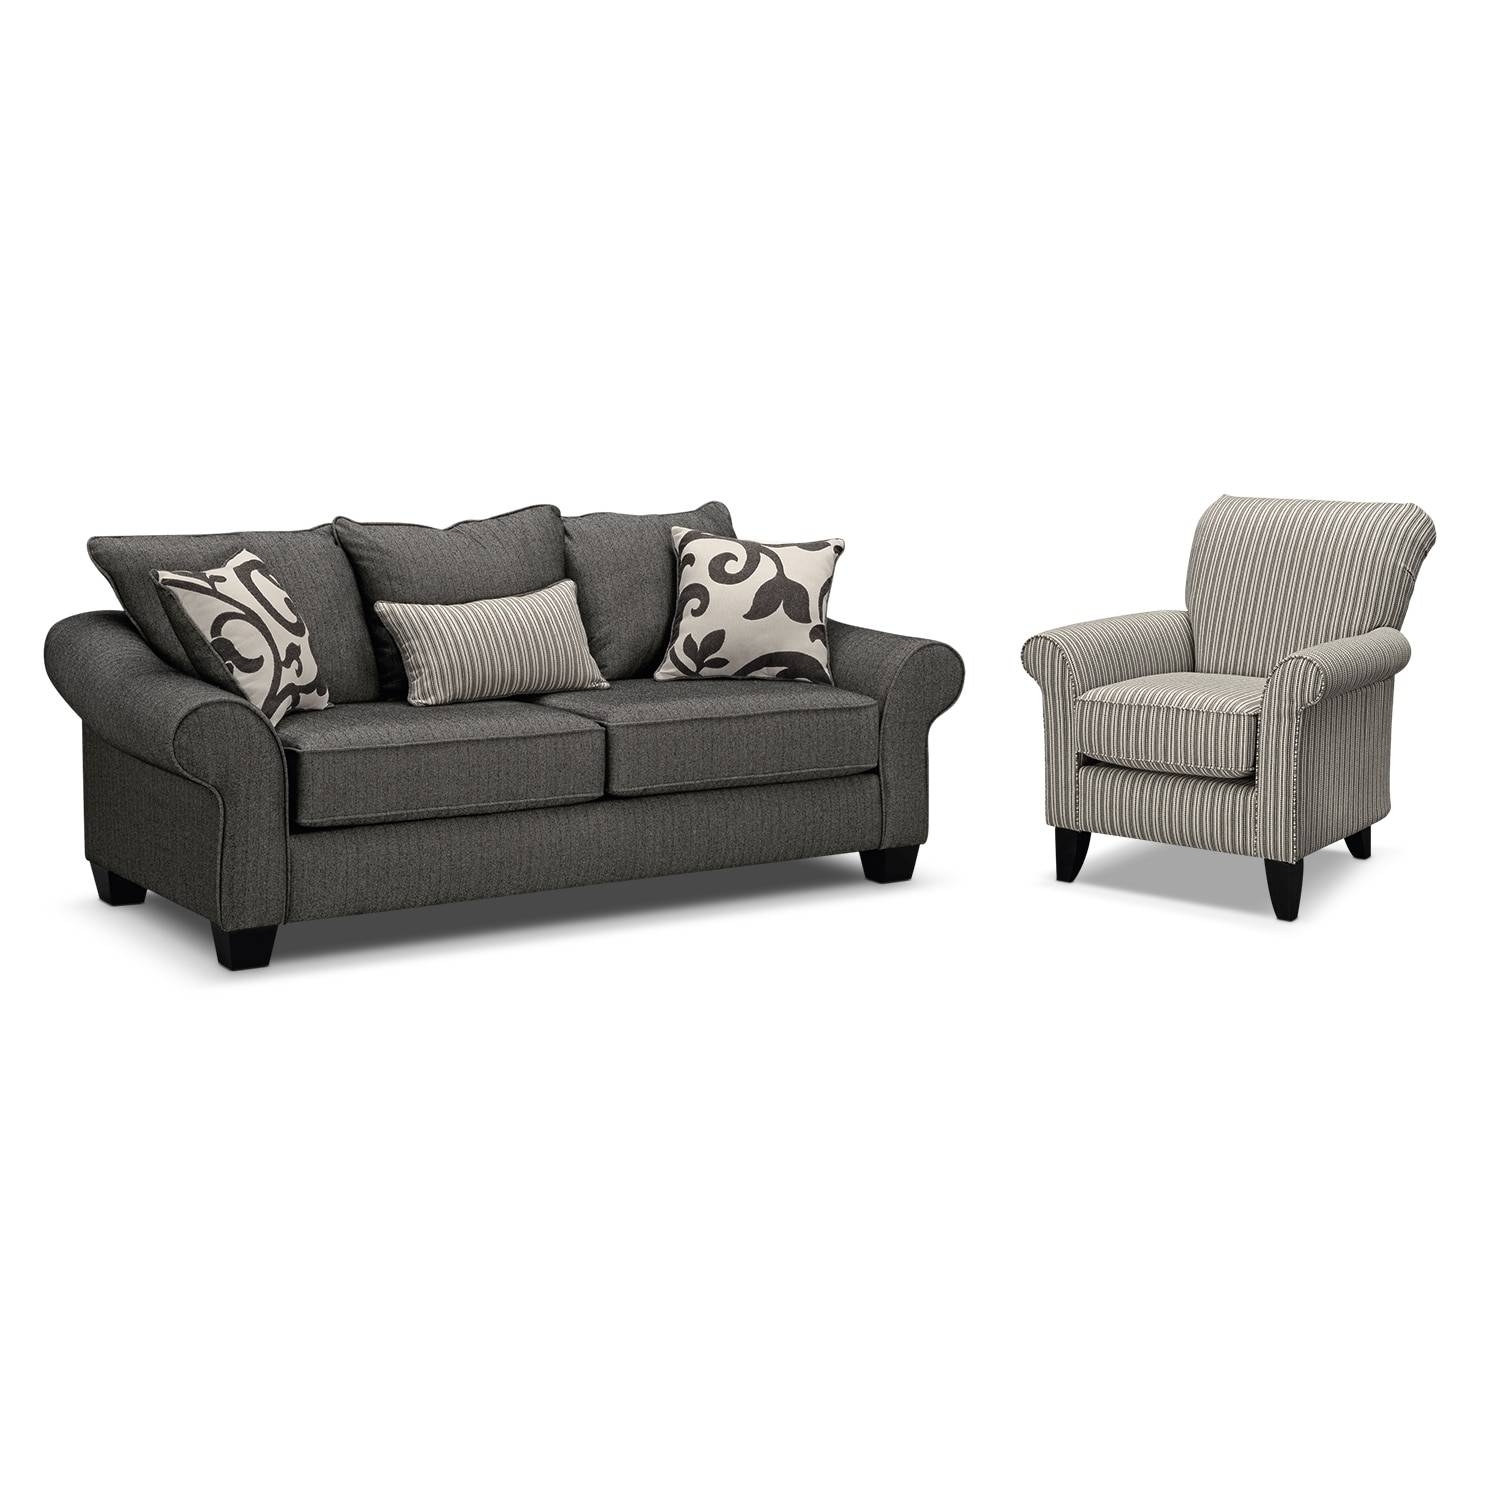 Colette Sofa And Accent Chair Set - Gray | Value City Furniture intended for Sofa And Accent Chair Set (Image 11 of 30)